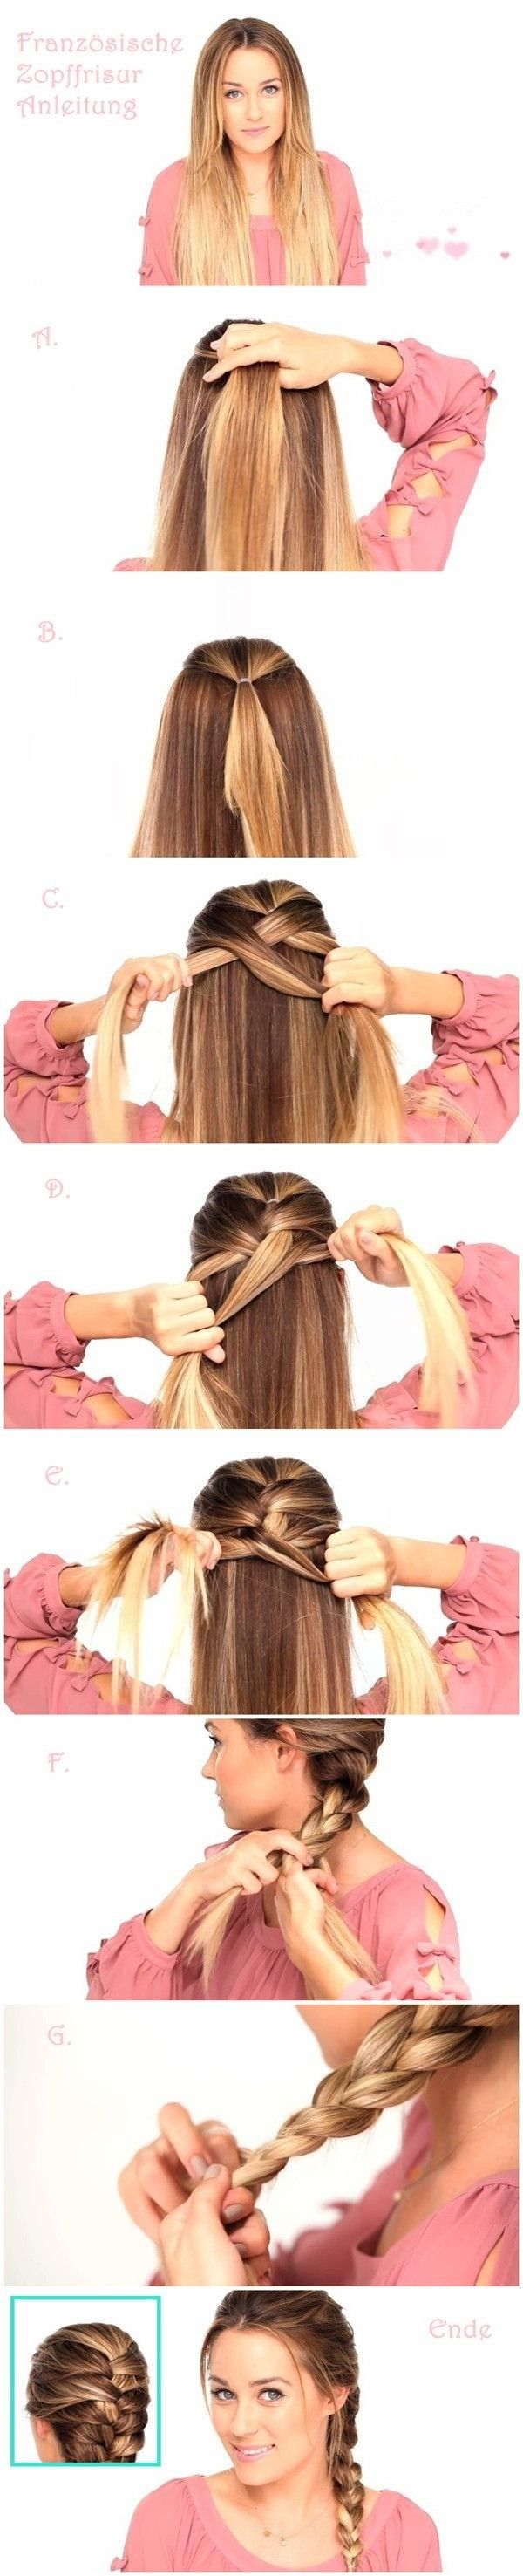 Braided-Hairstyle-Ideas 20 Cute and Easy Braided Hairstyle Tutorials